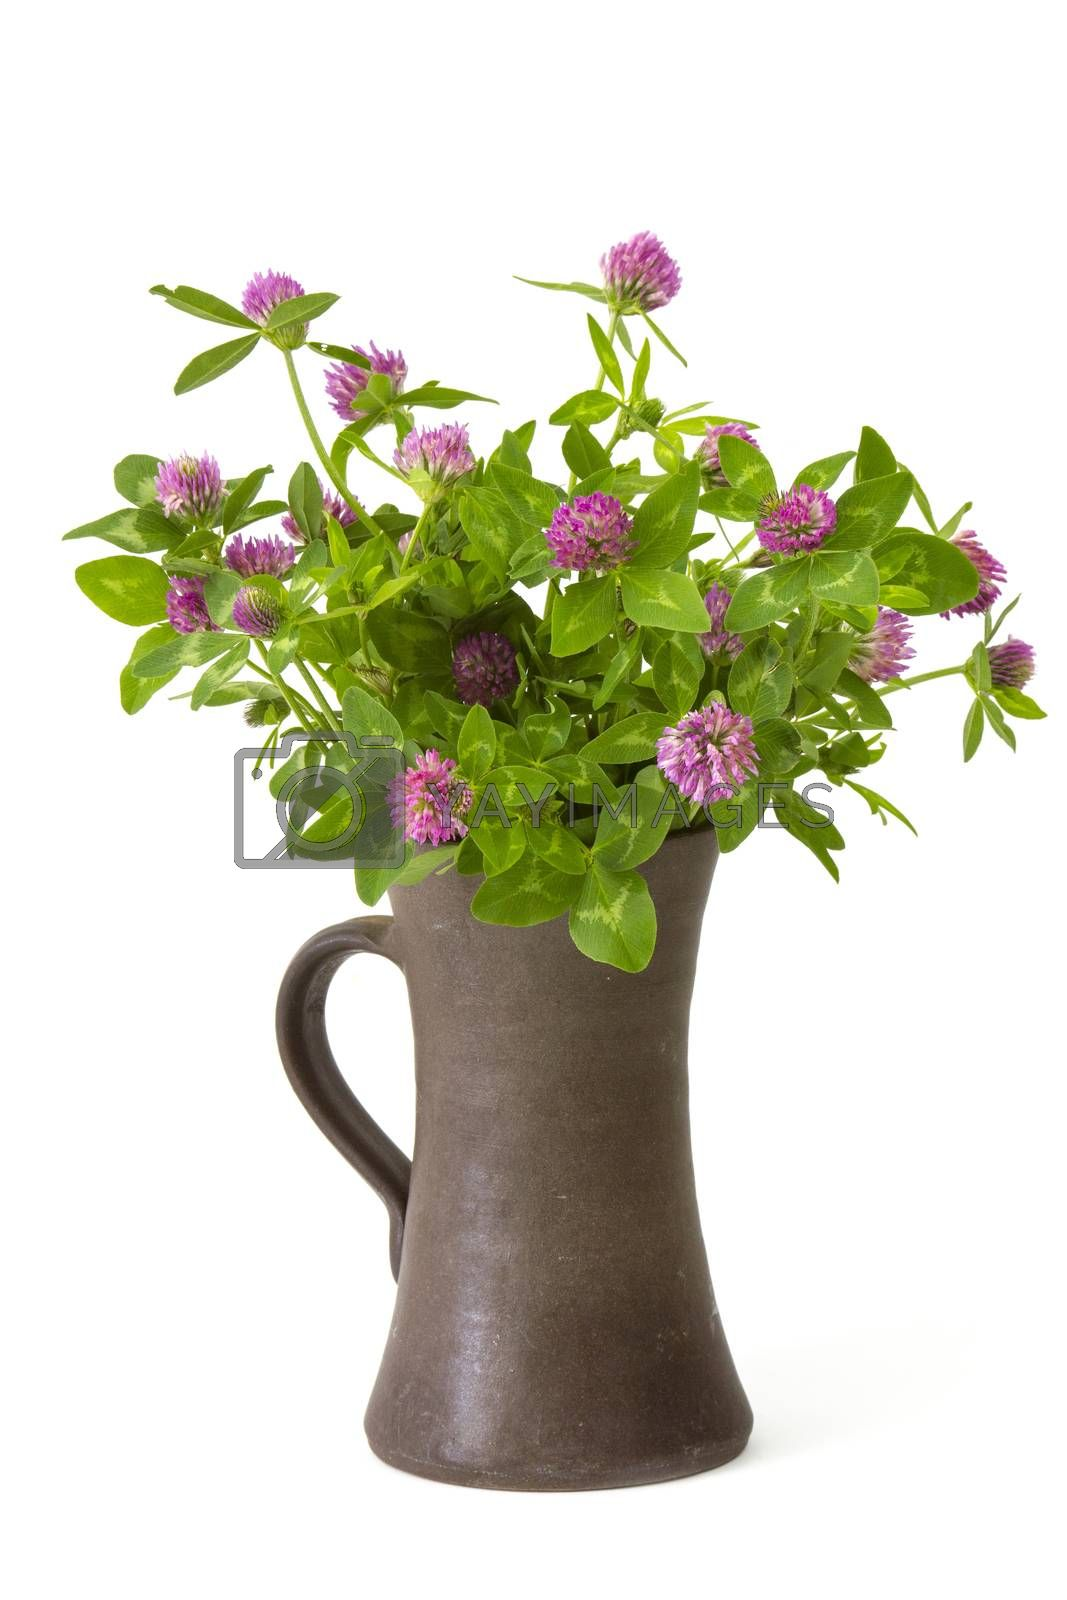 Bunch of clover in a vase